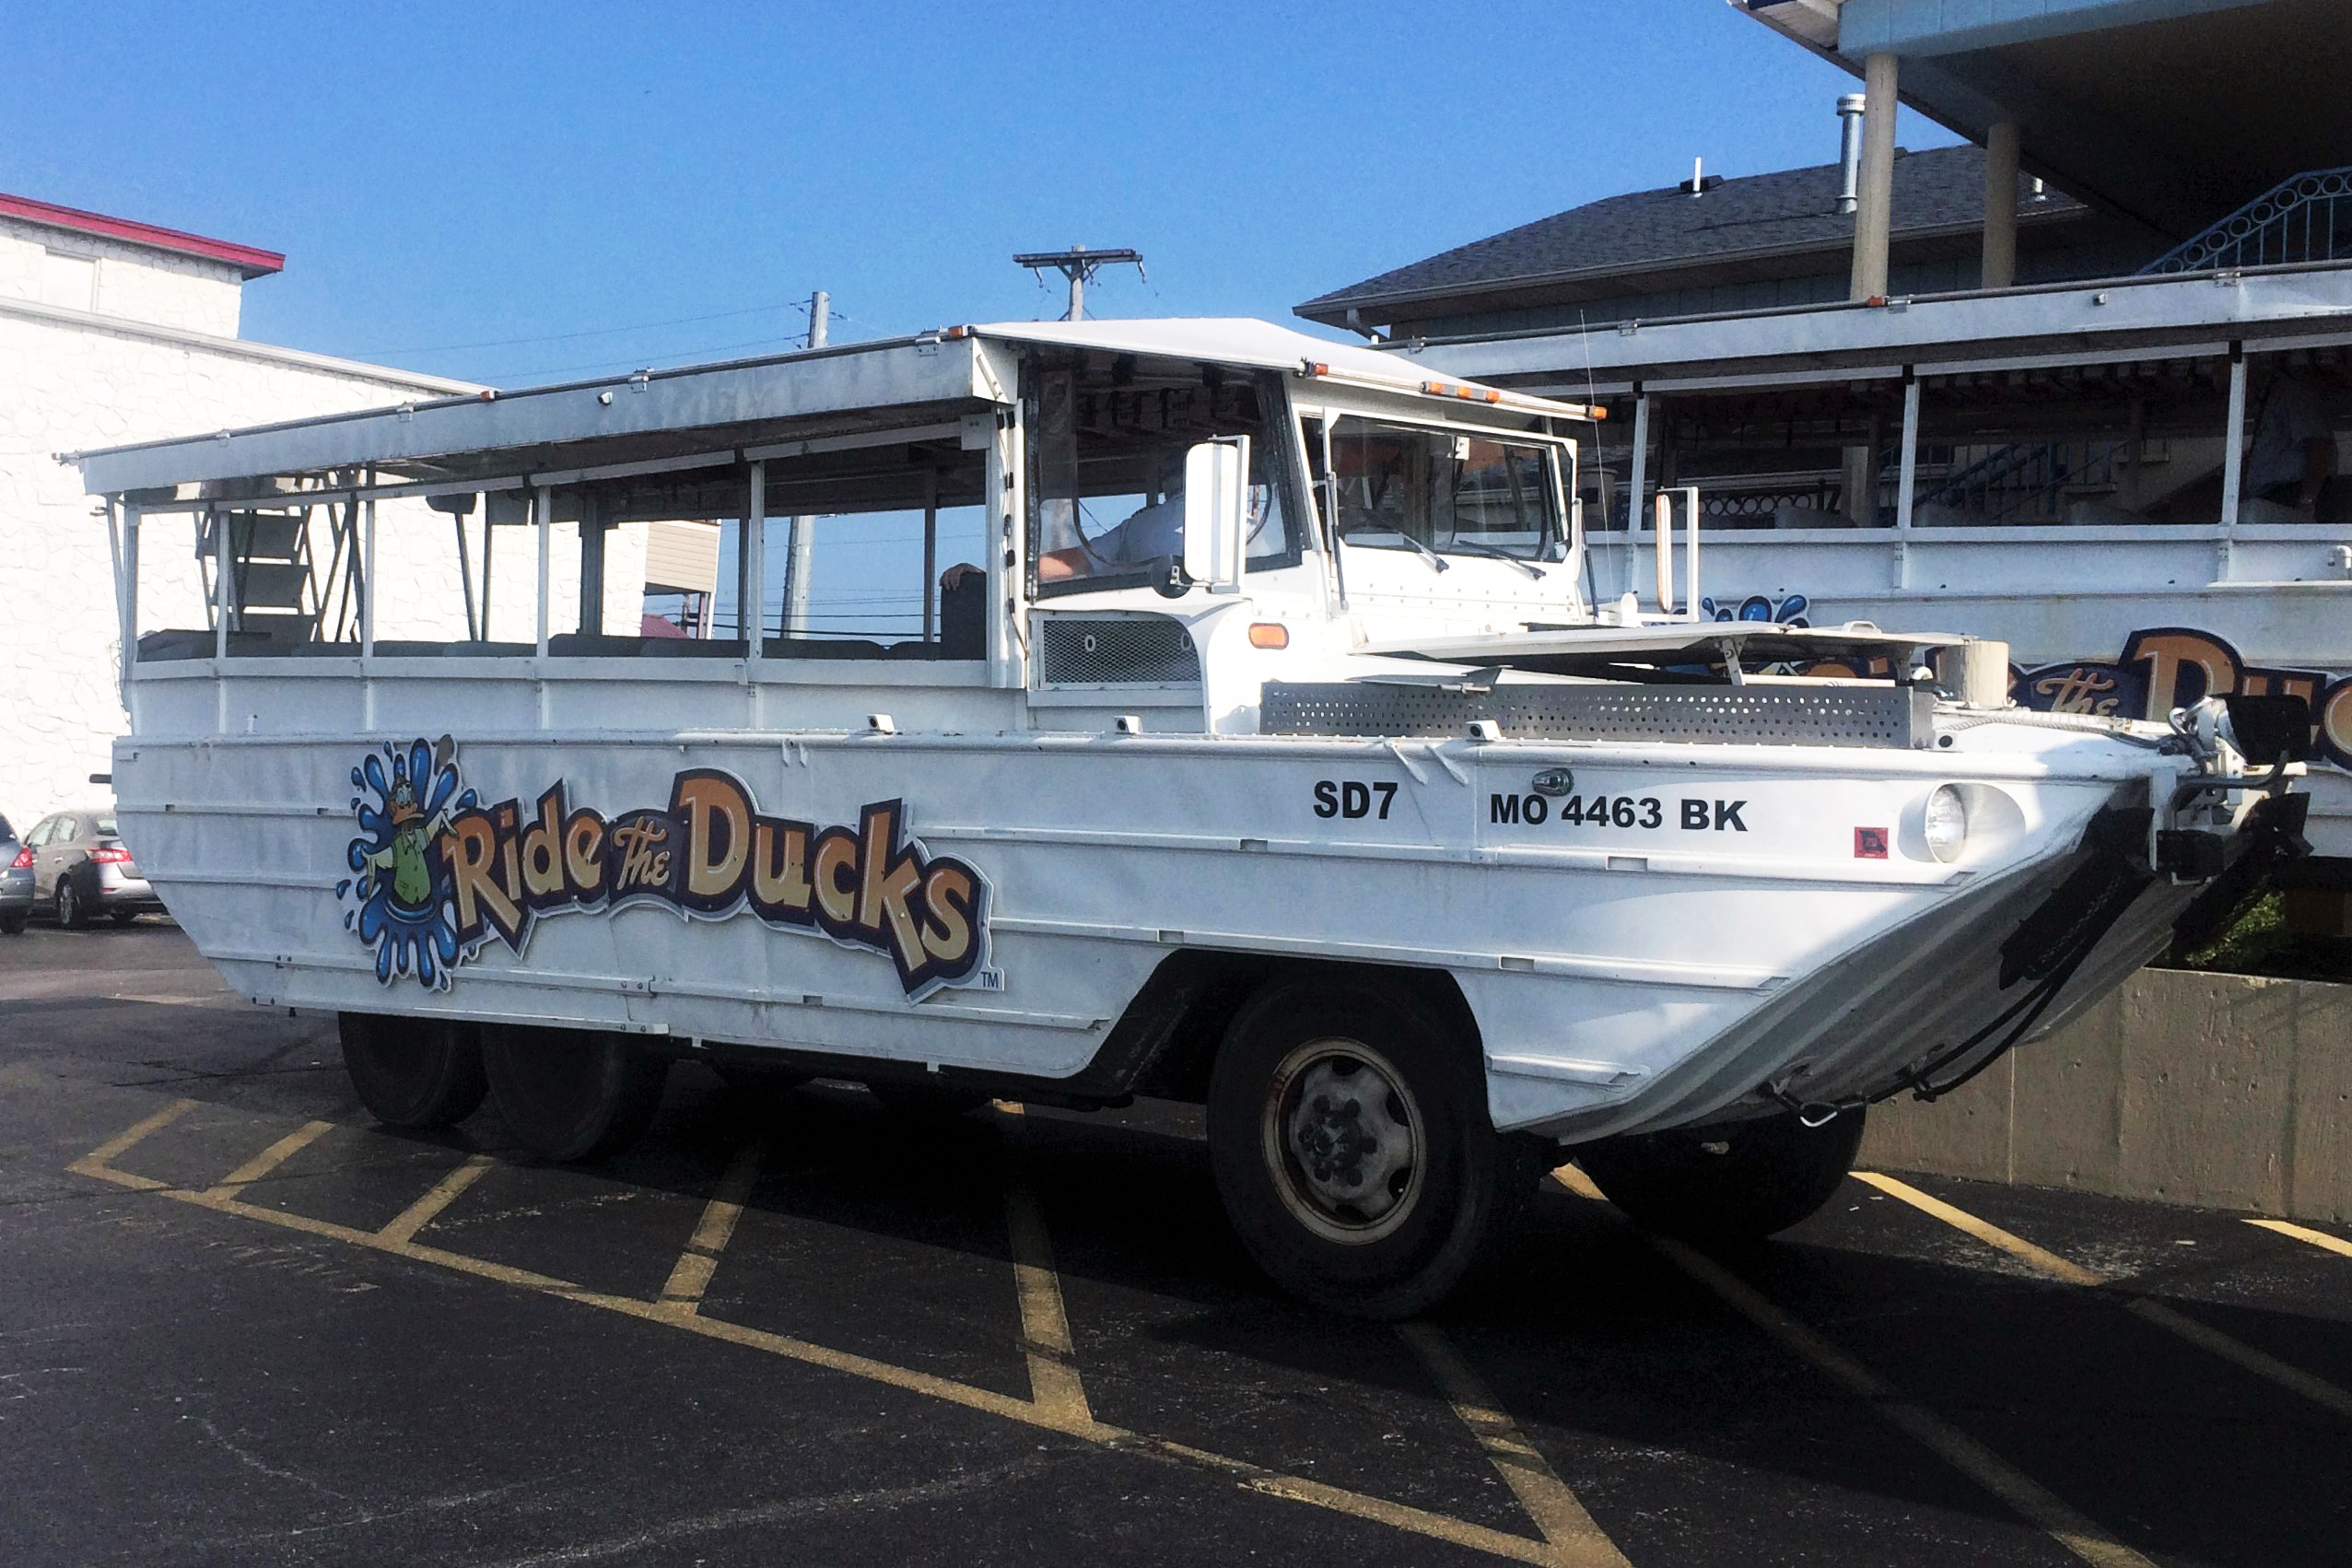 A 'Ride the Ducks' duck boat like the one that sank in Missouri on July 19 (David Wills, Wikimedia Commons)